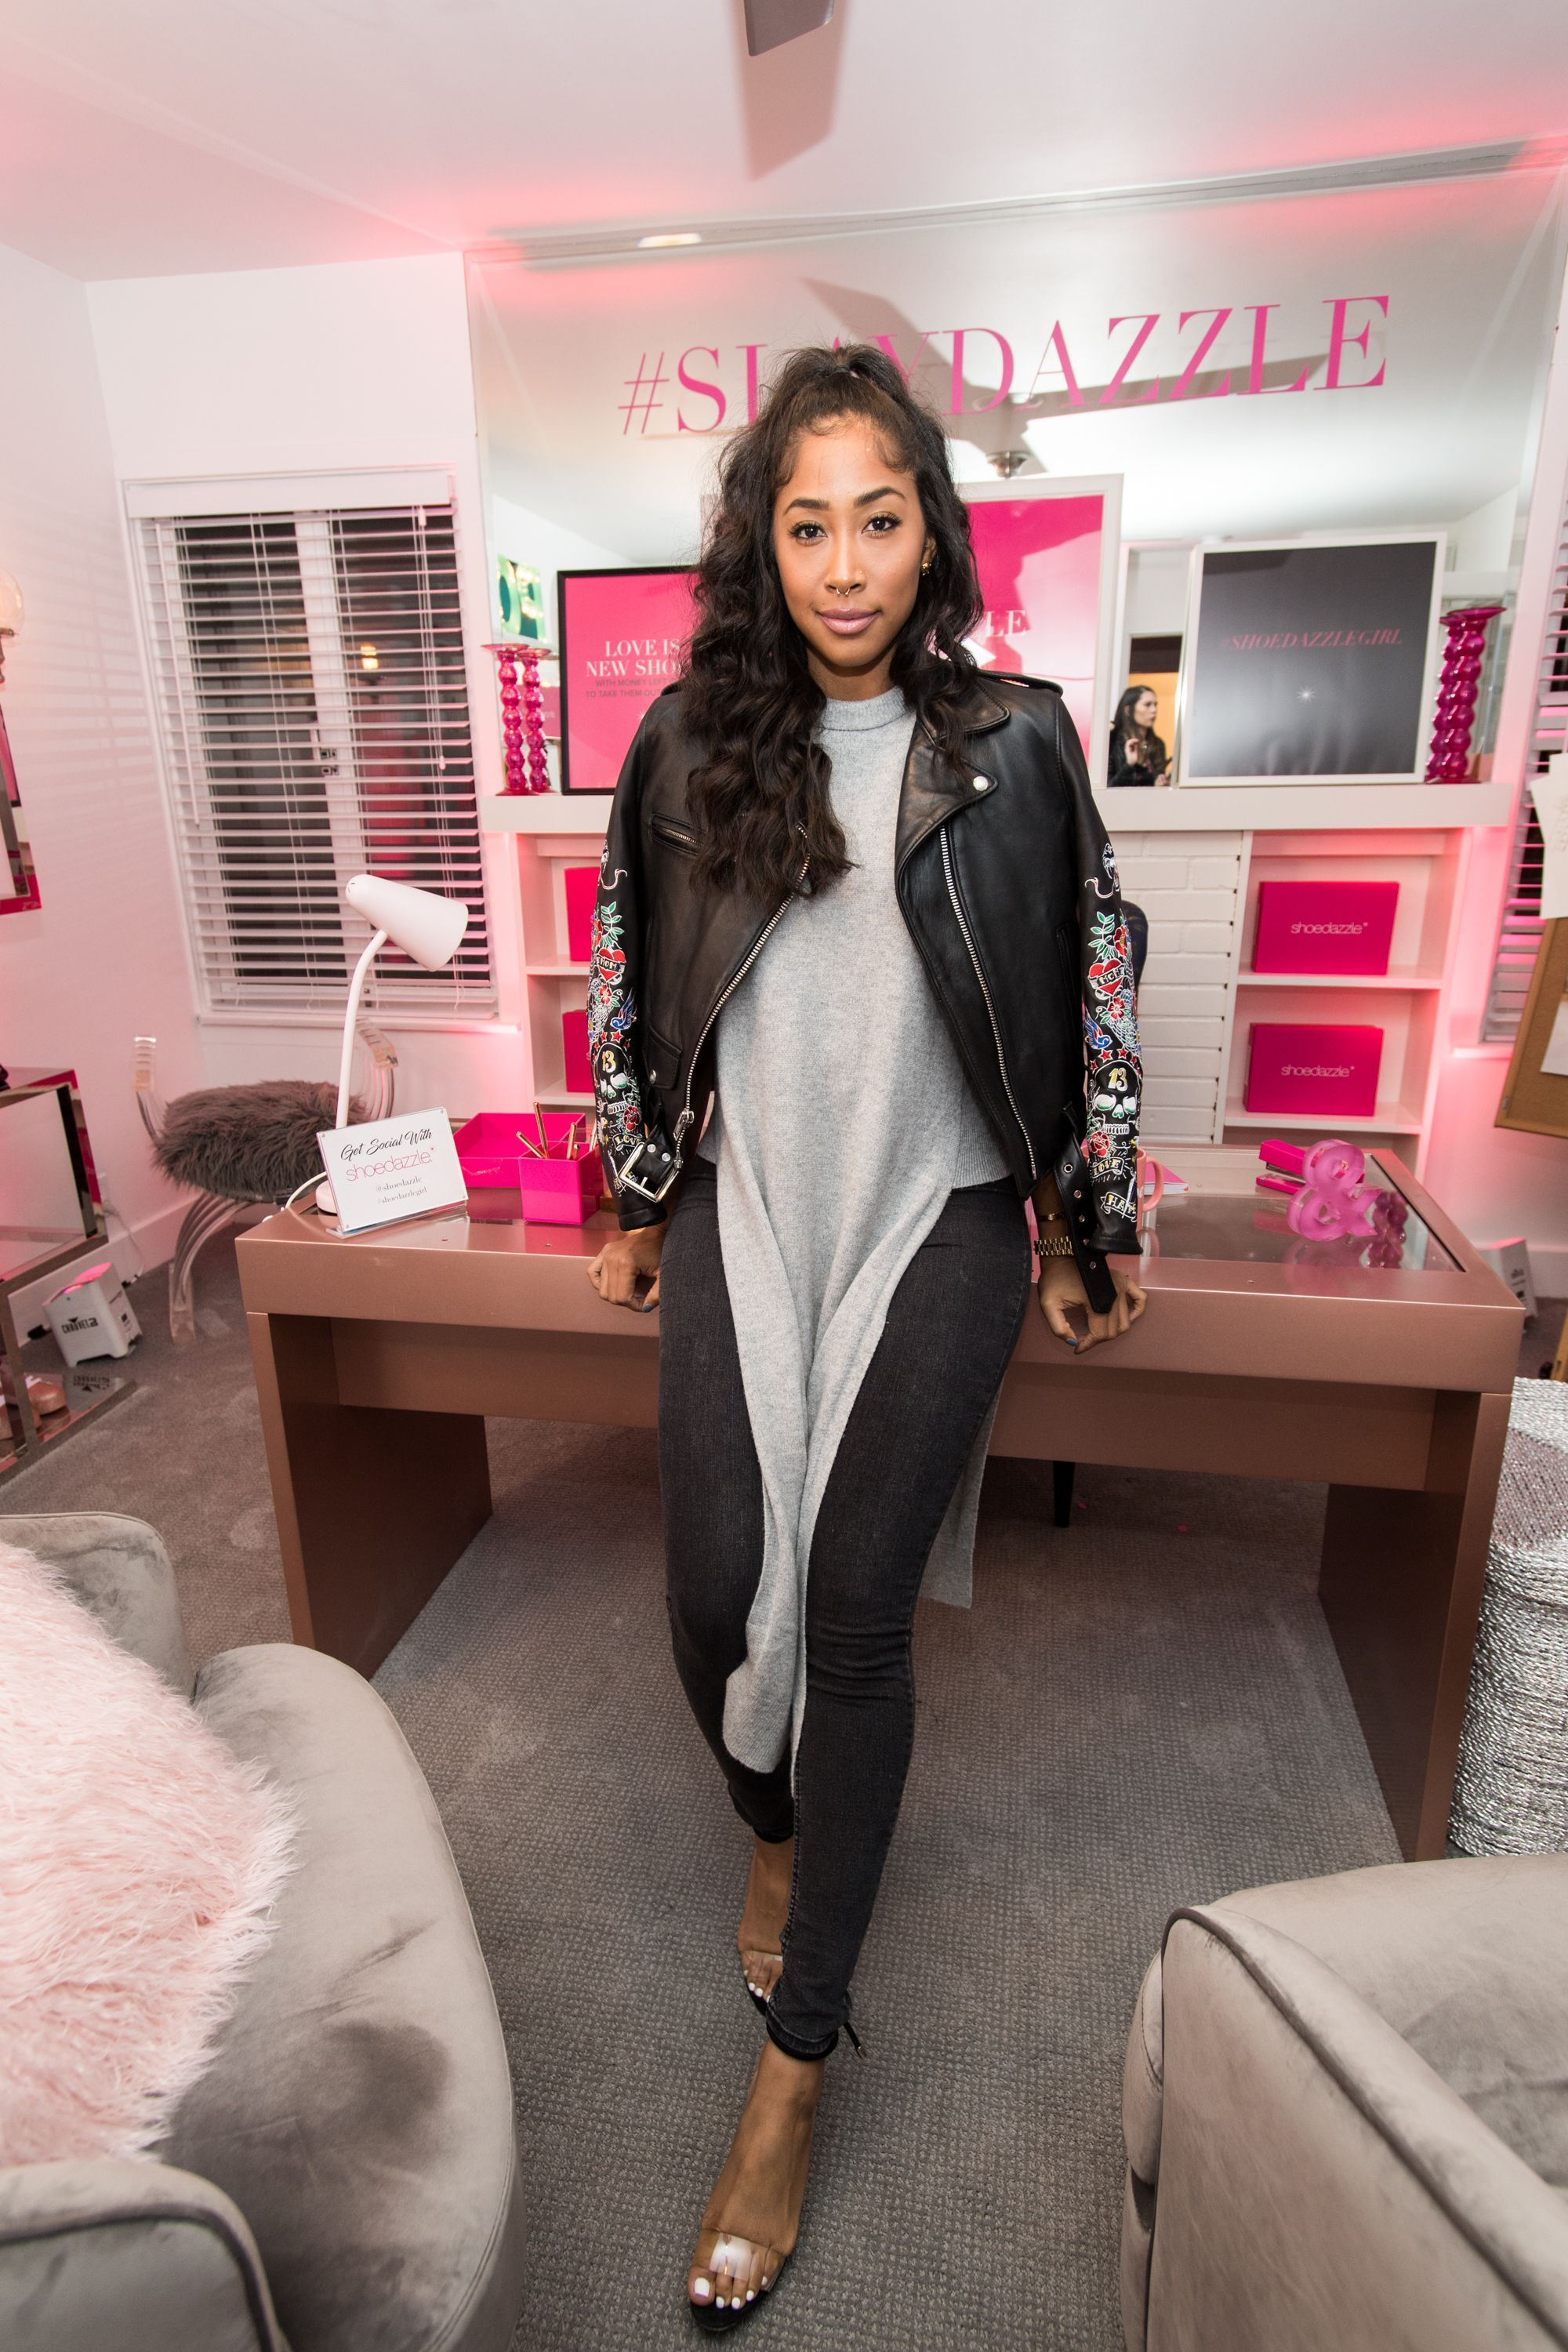 """Actress Apryl Jones attending the """"ShoeDazzle X BarbieStyle party"""" on January 31, 2018 in California. 